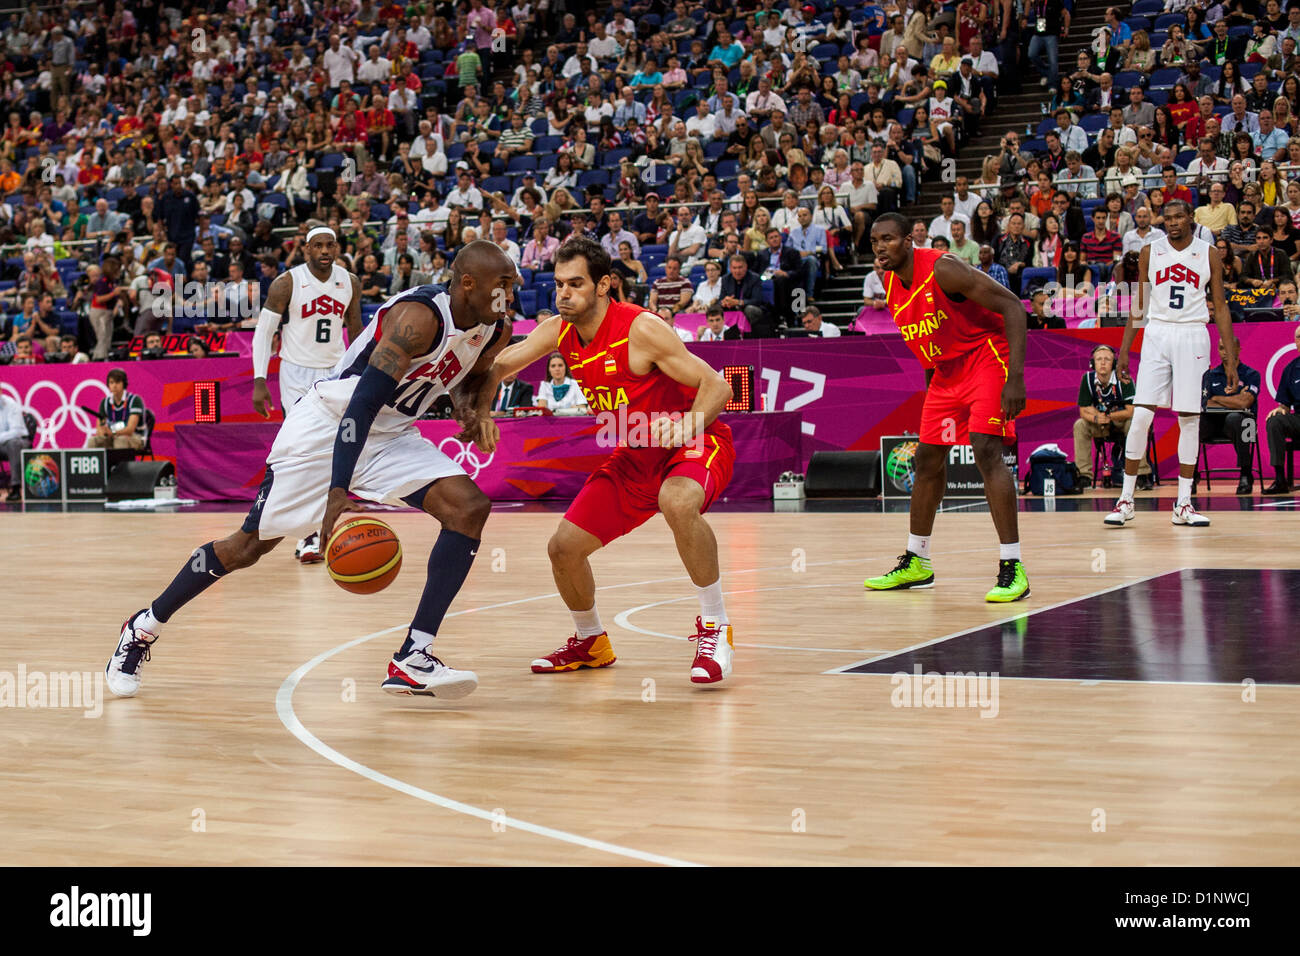 Kobe Bryant (USA) competing in the Gold Medal Men's Basketball Game at the Olympic Summer Games, London 2012 - Stock Image